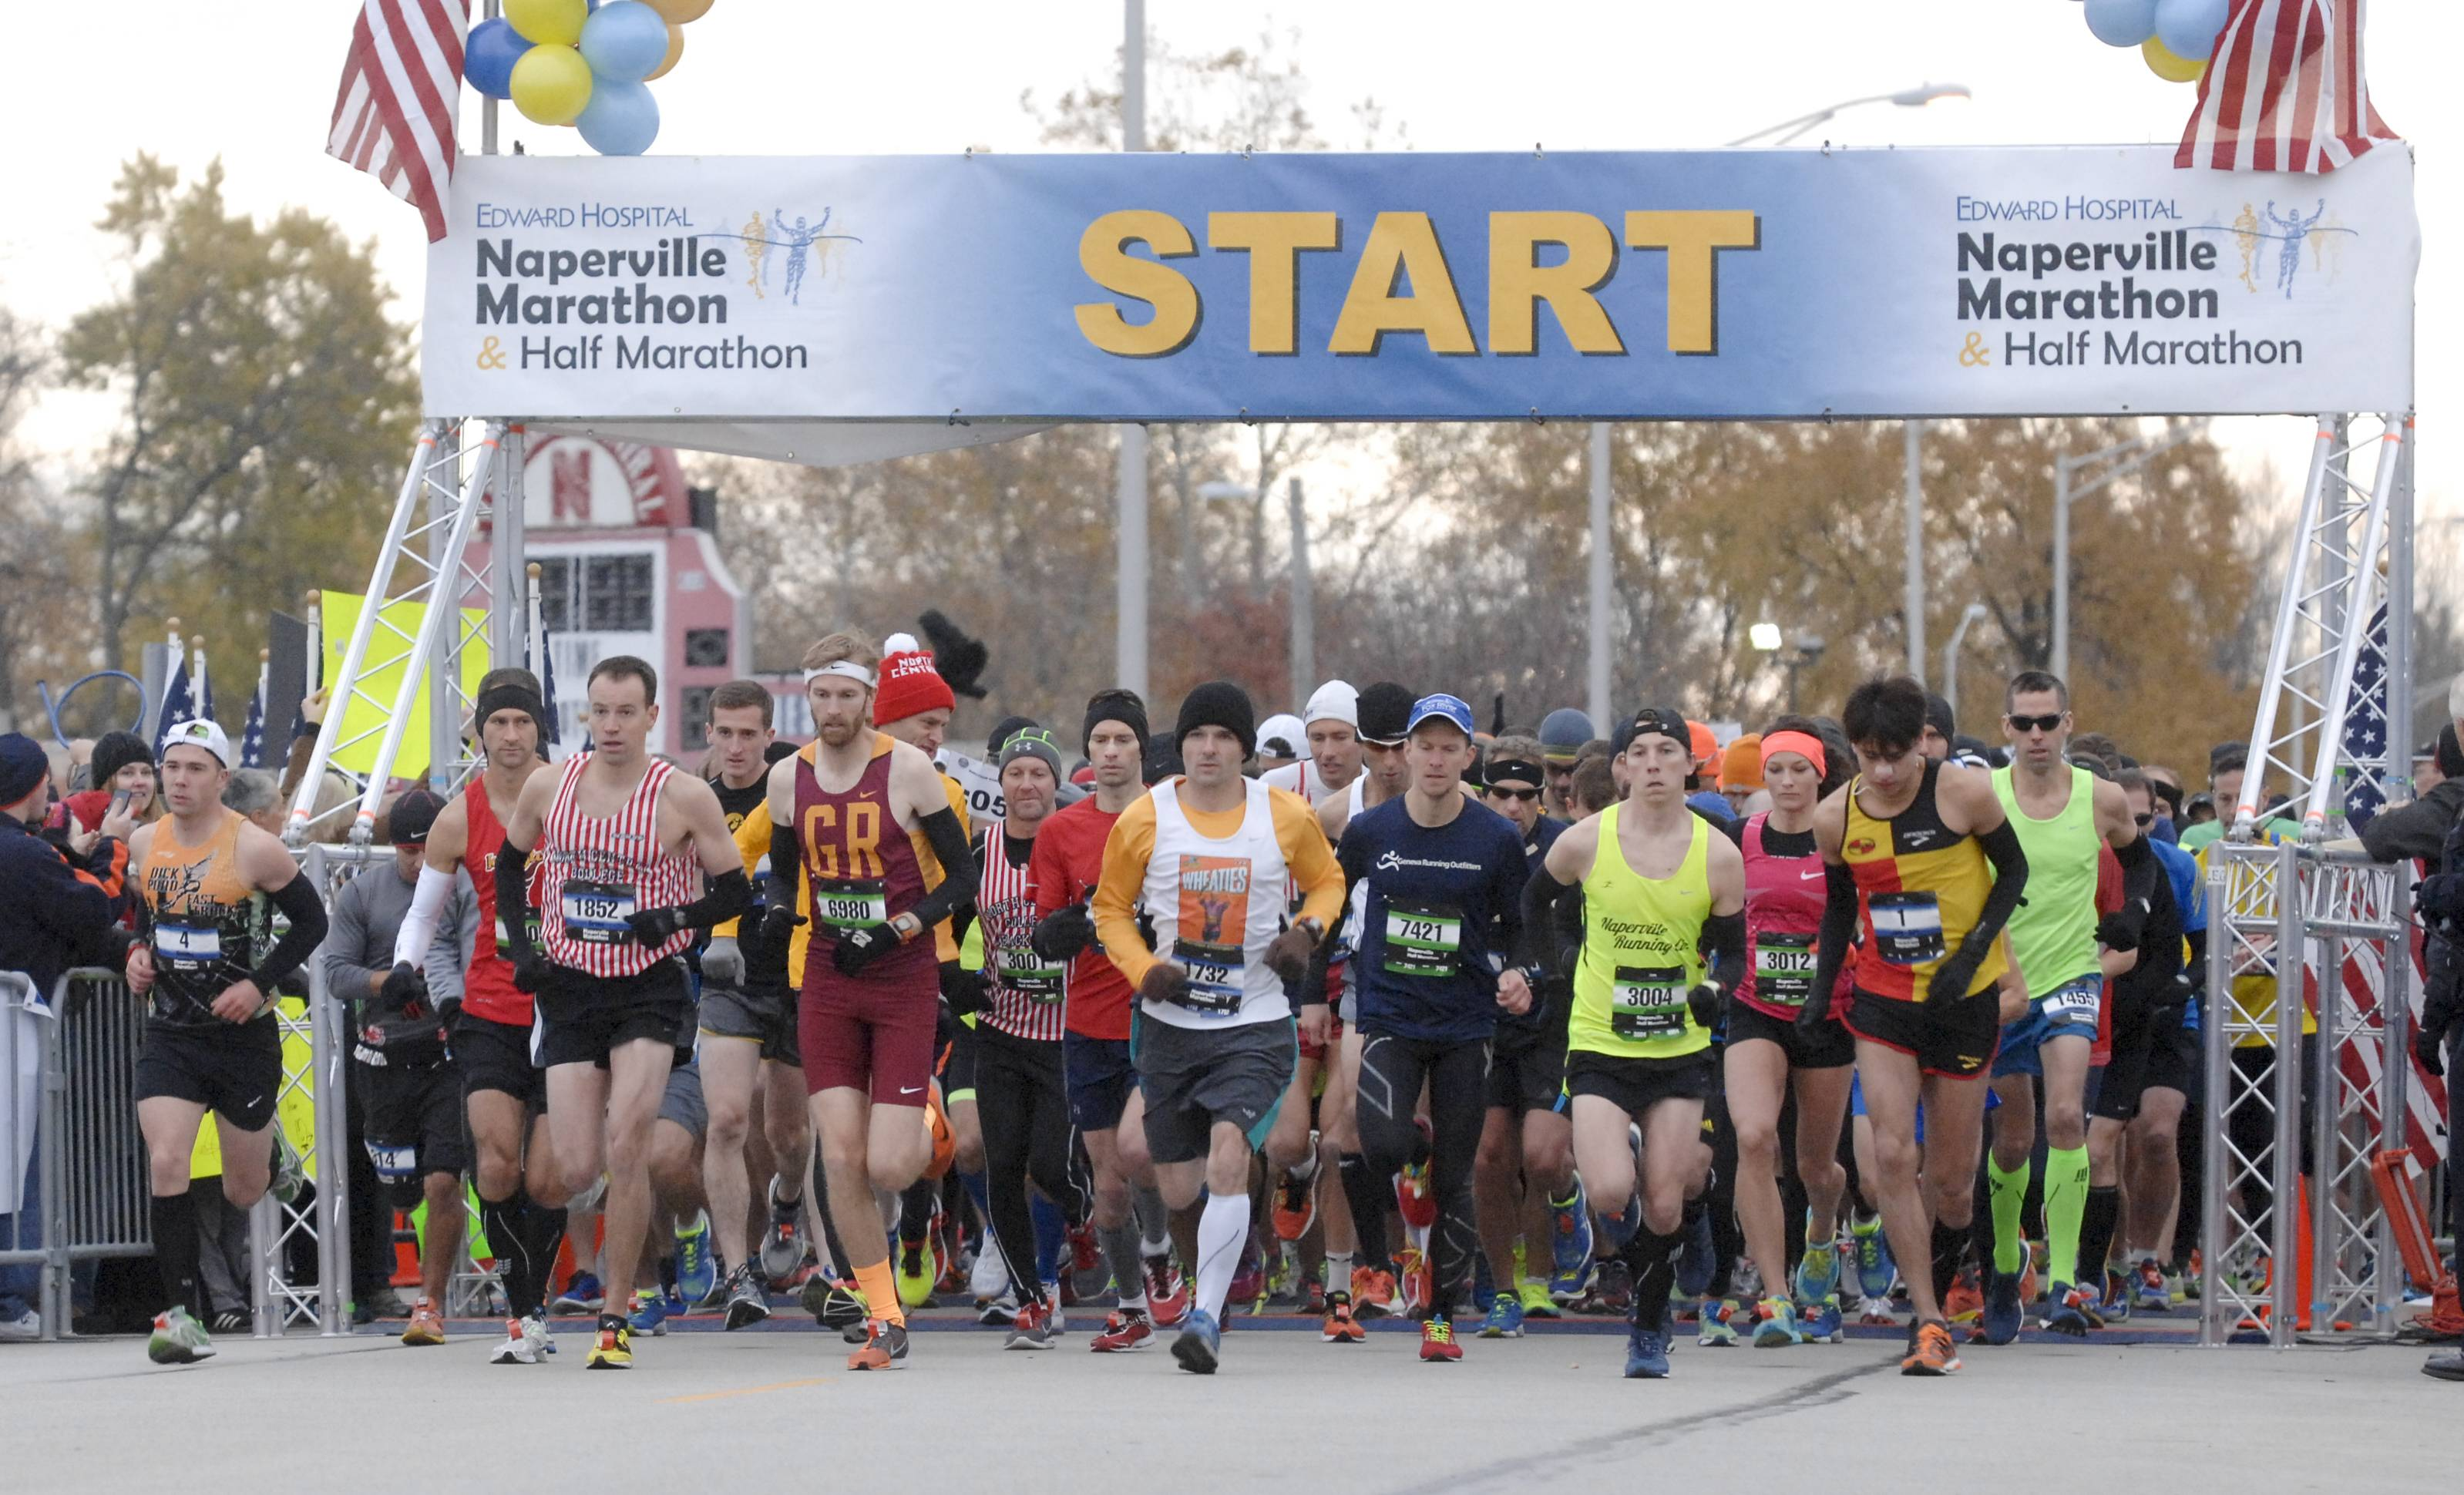 3 new things you'll see at third Naperville Marathon